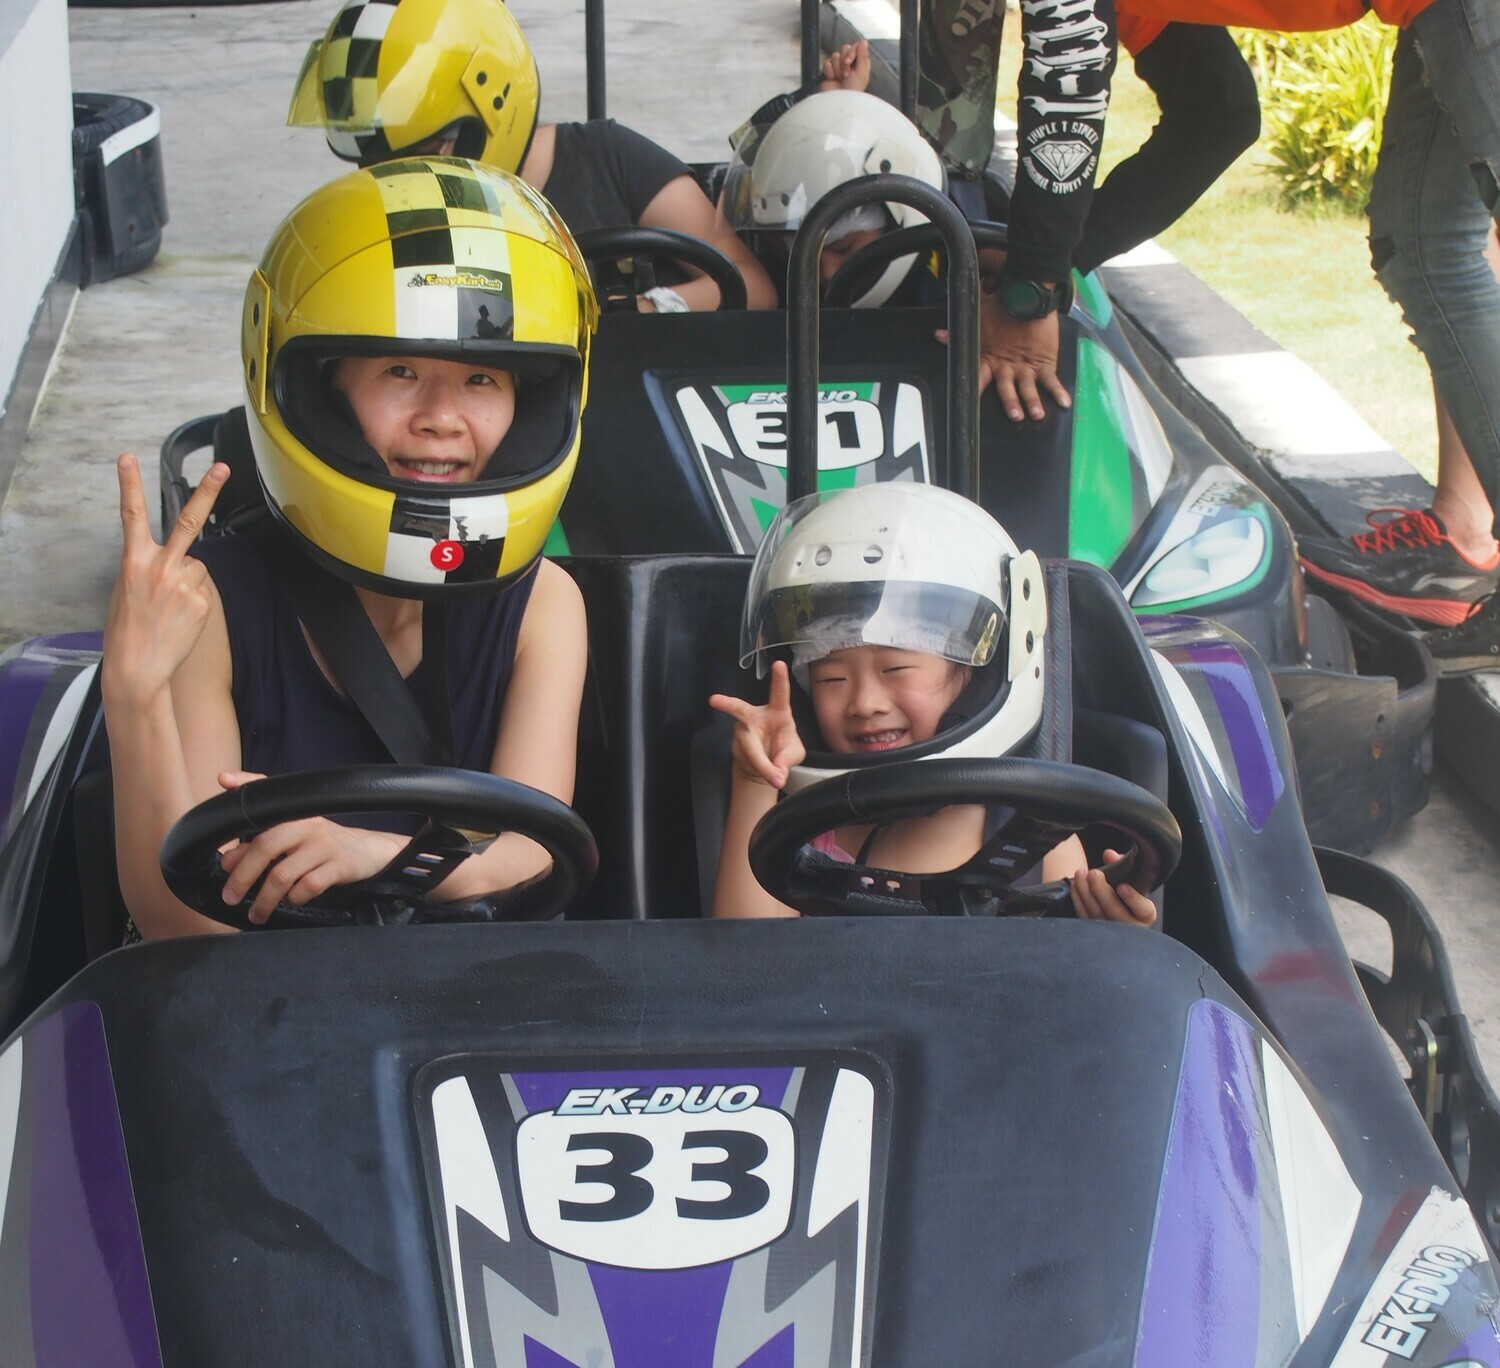 [5% OFF] 双座卡丁车 (1次) - Pattaya 2 seater kart (1 race)